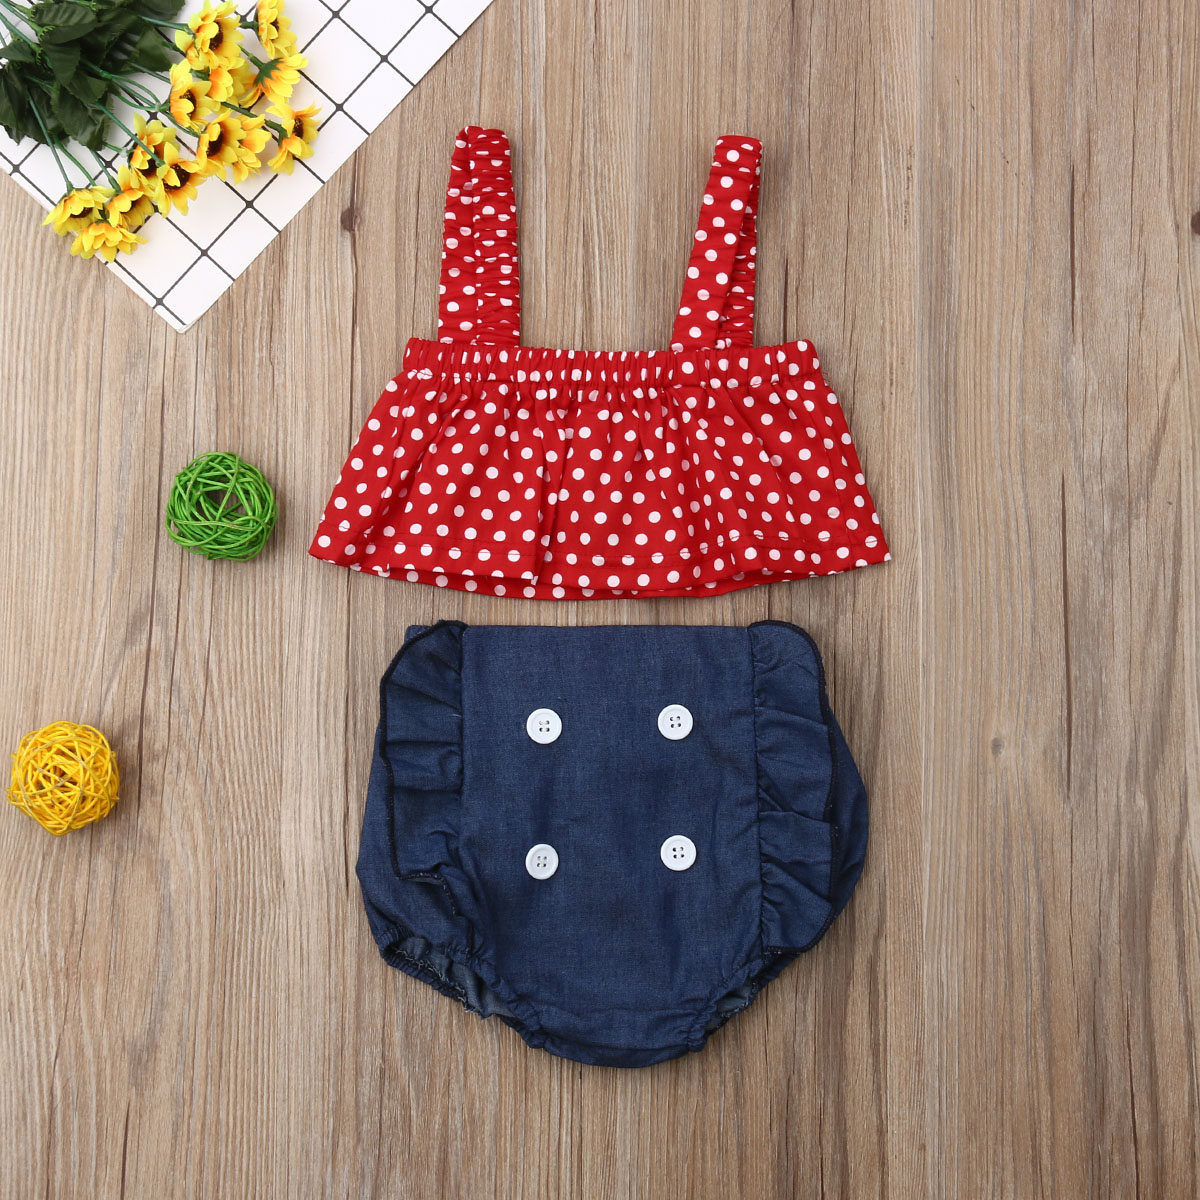 Pudcoco Summer Newborn Baby Girl Clothes Polka Dot Strap Cropped Tops Denim Short Bib Pants 2Pcs Outfits Cotton Clothes